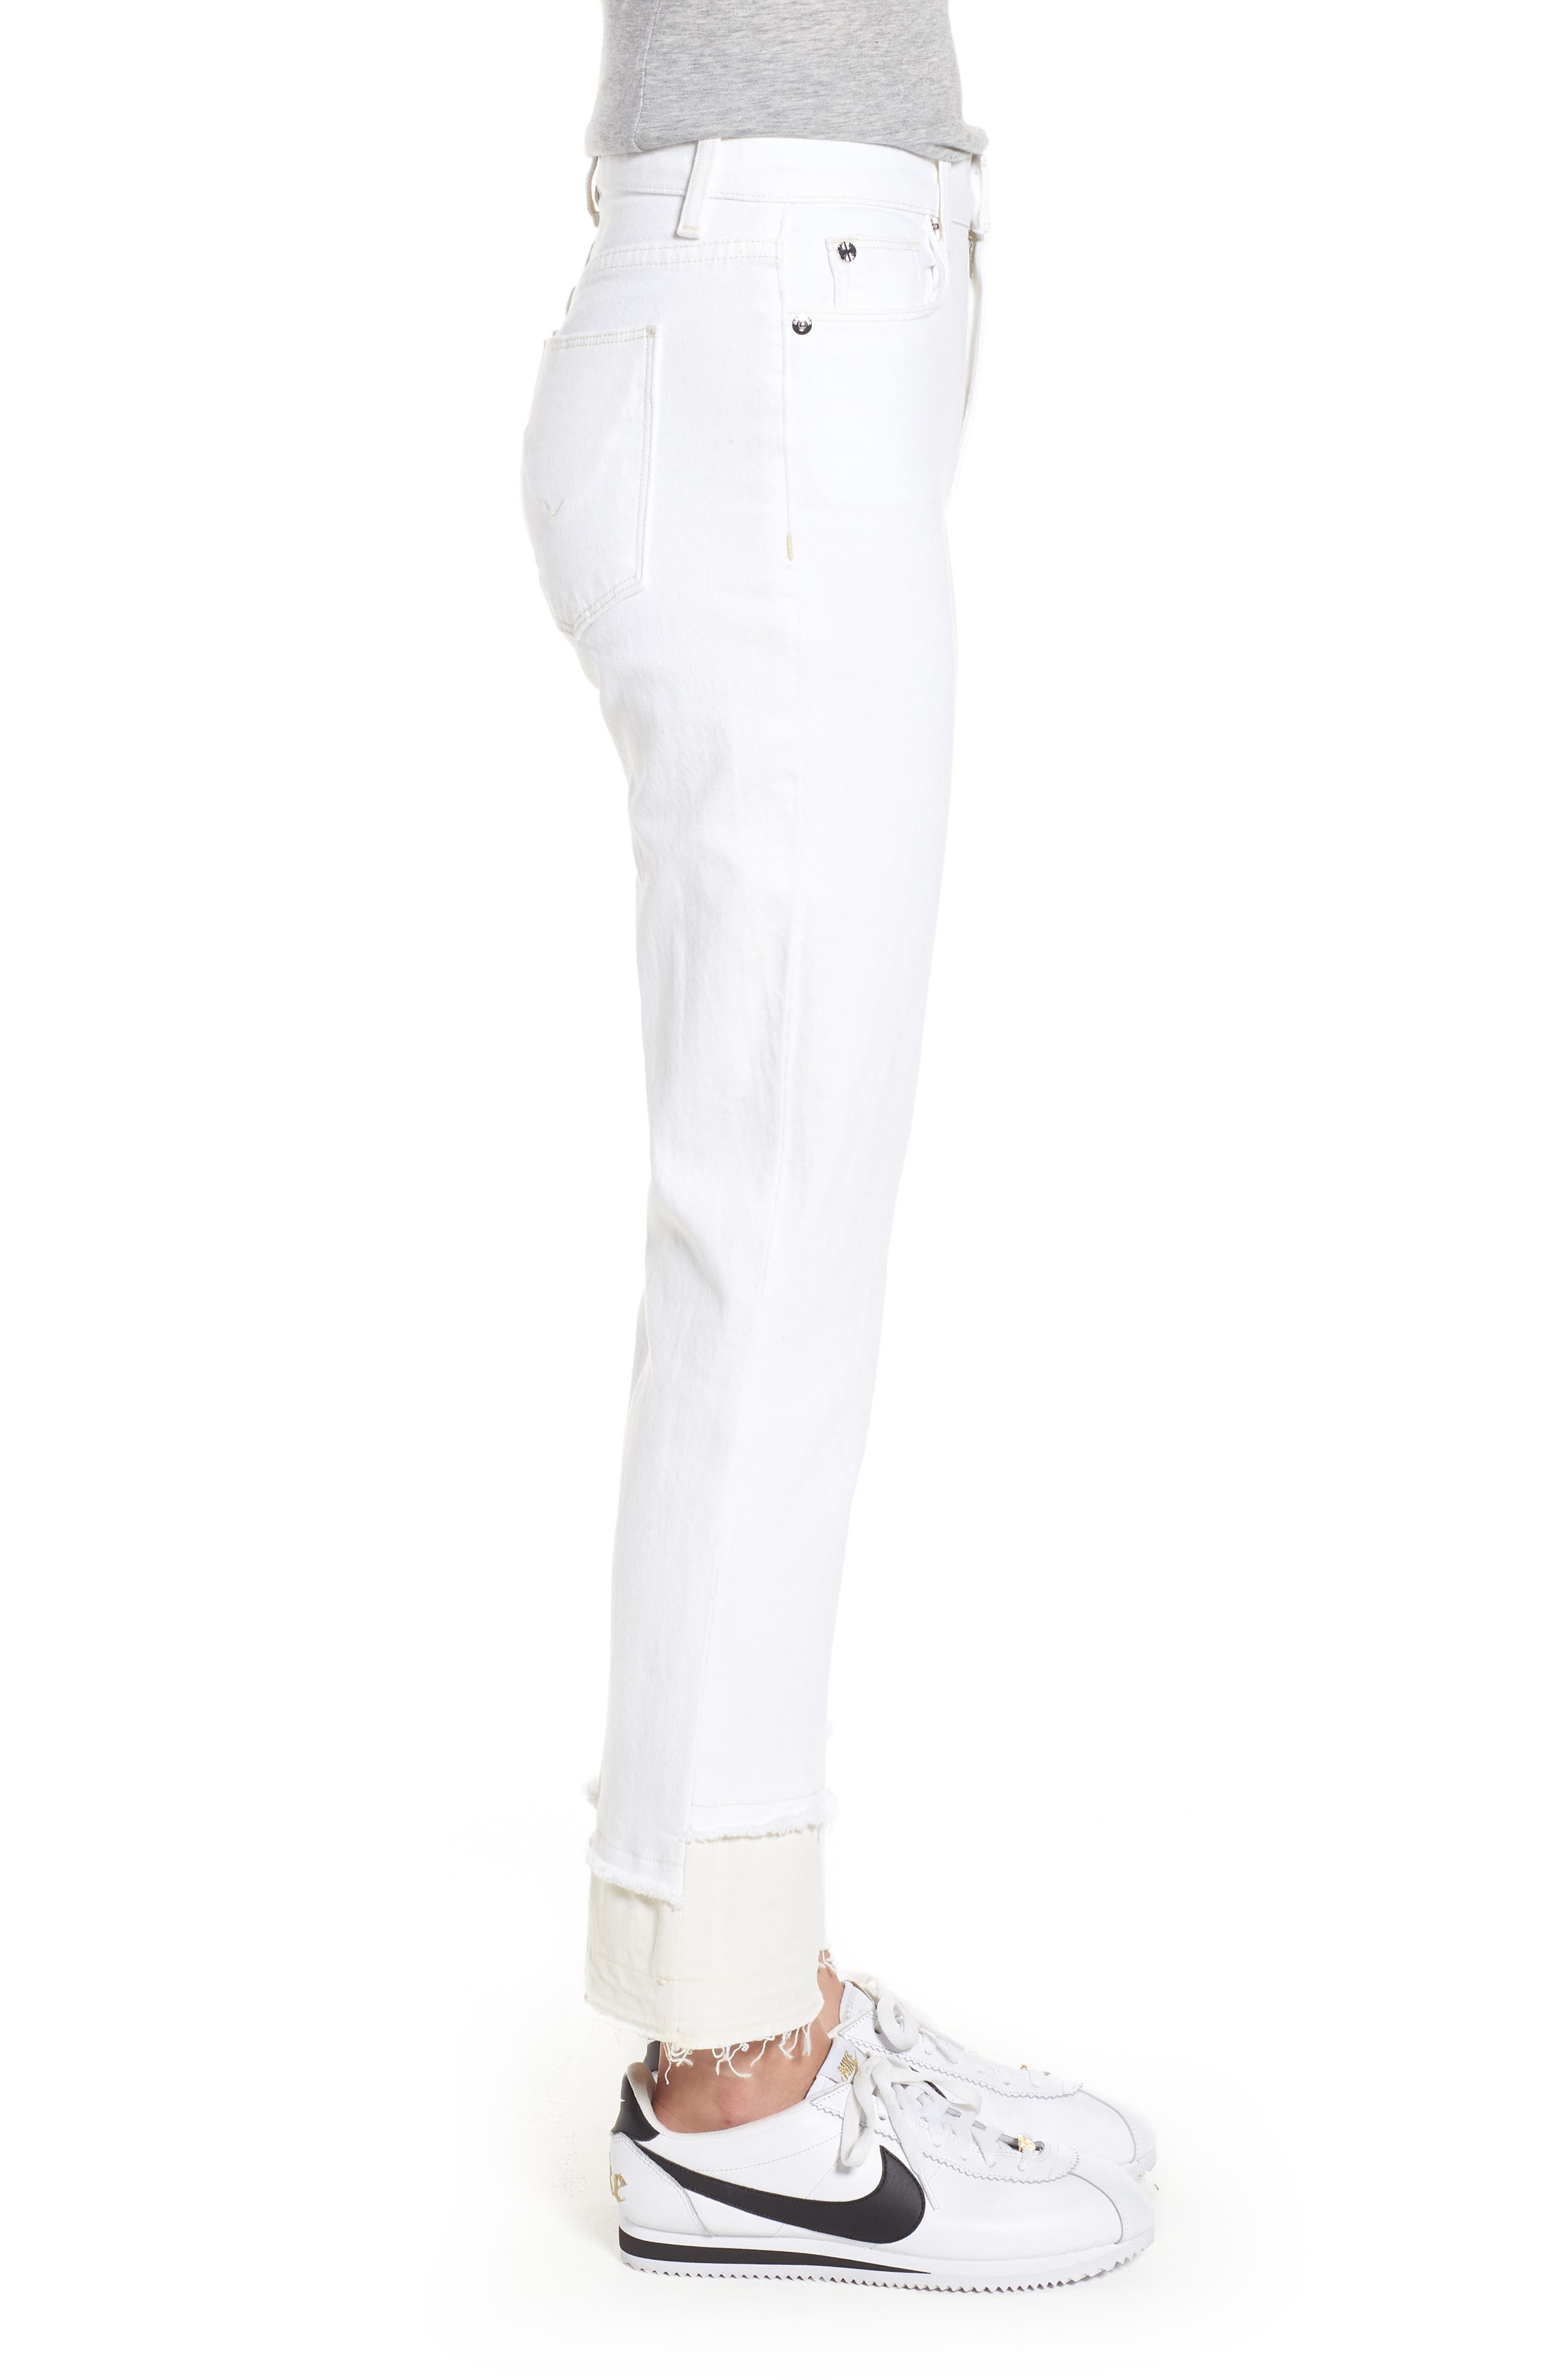 Zoeey High Waist Crop Straight Leg Jeans,                             Alternate thumbnail 3, color,                             Stepped White